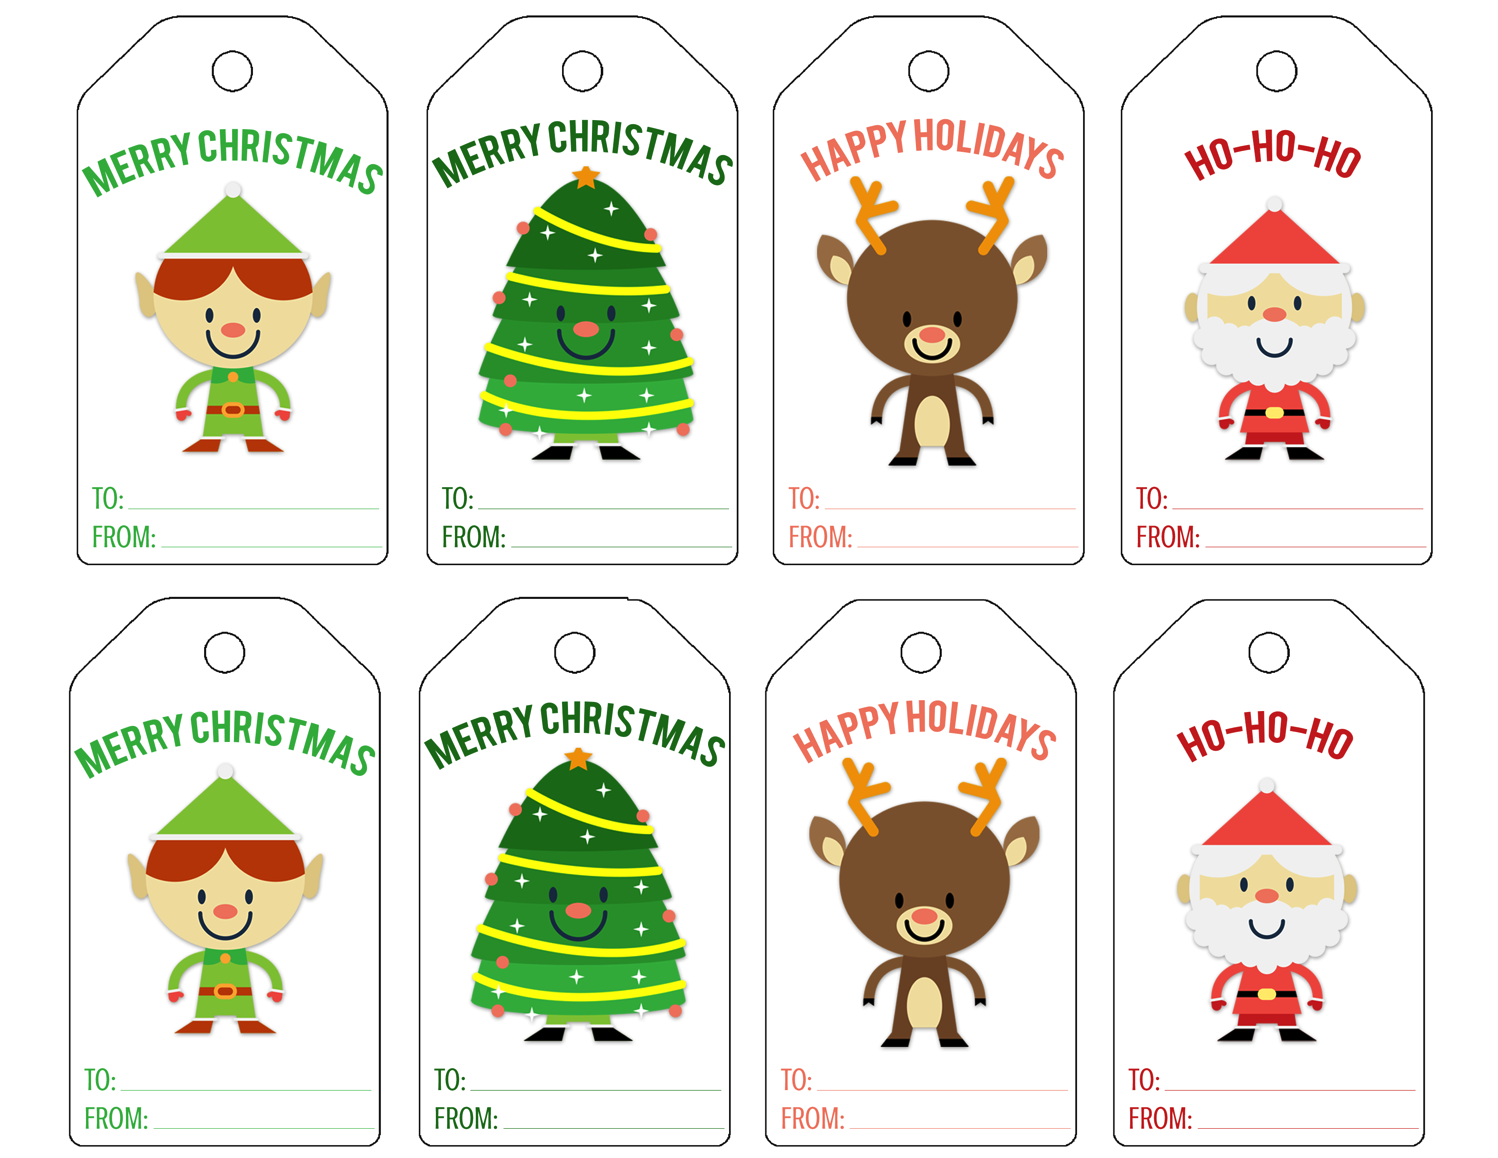 Christmas gift tag clipart picture library library Making Holiday Shopping Easier at Staples with a Free Christmas Gift ... picture library library